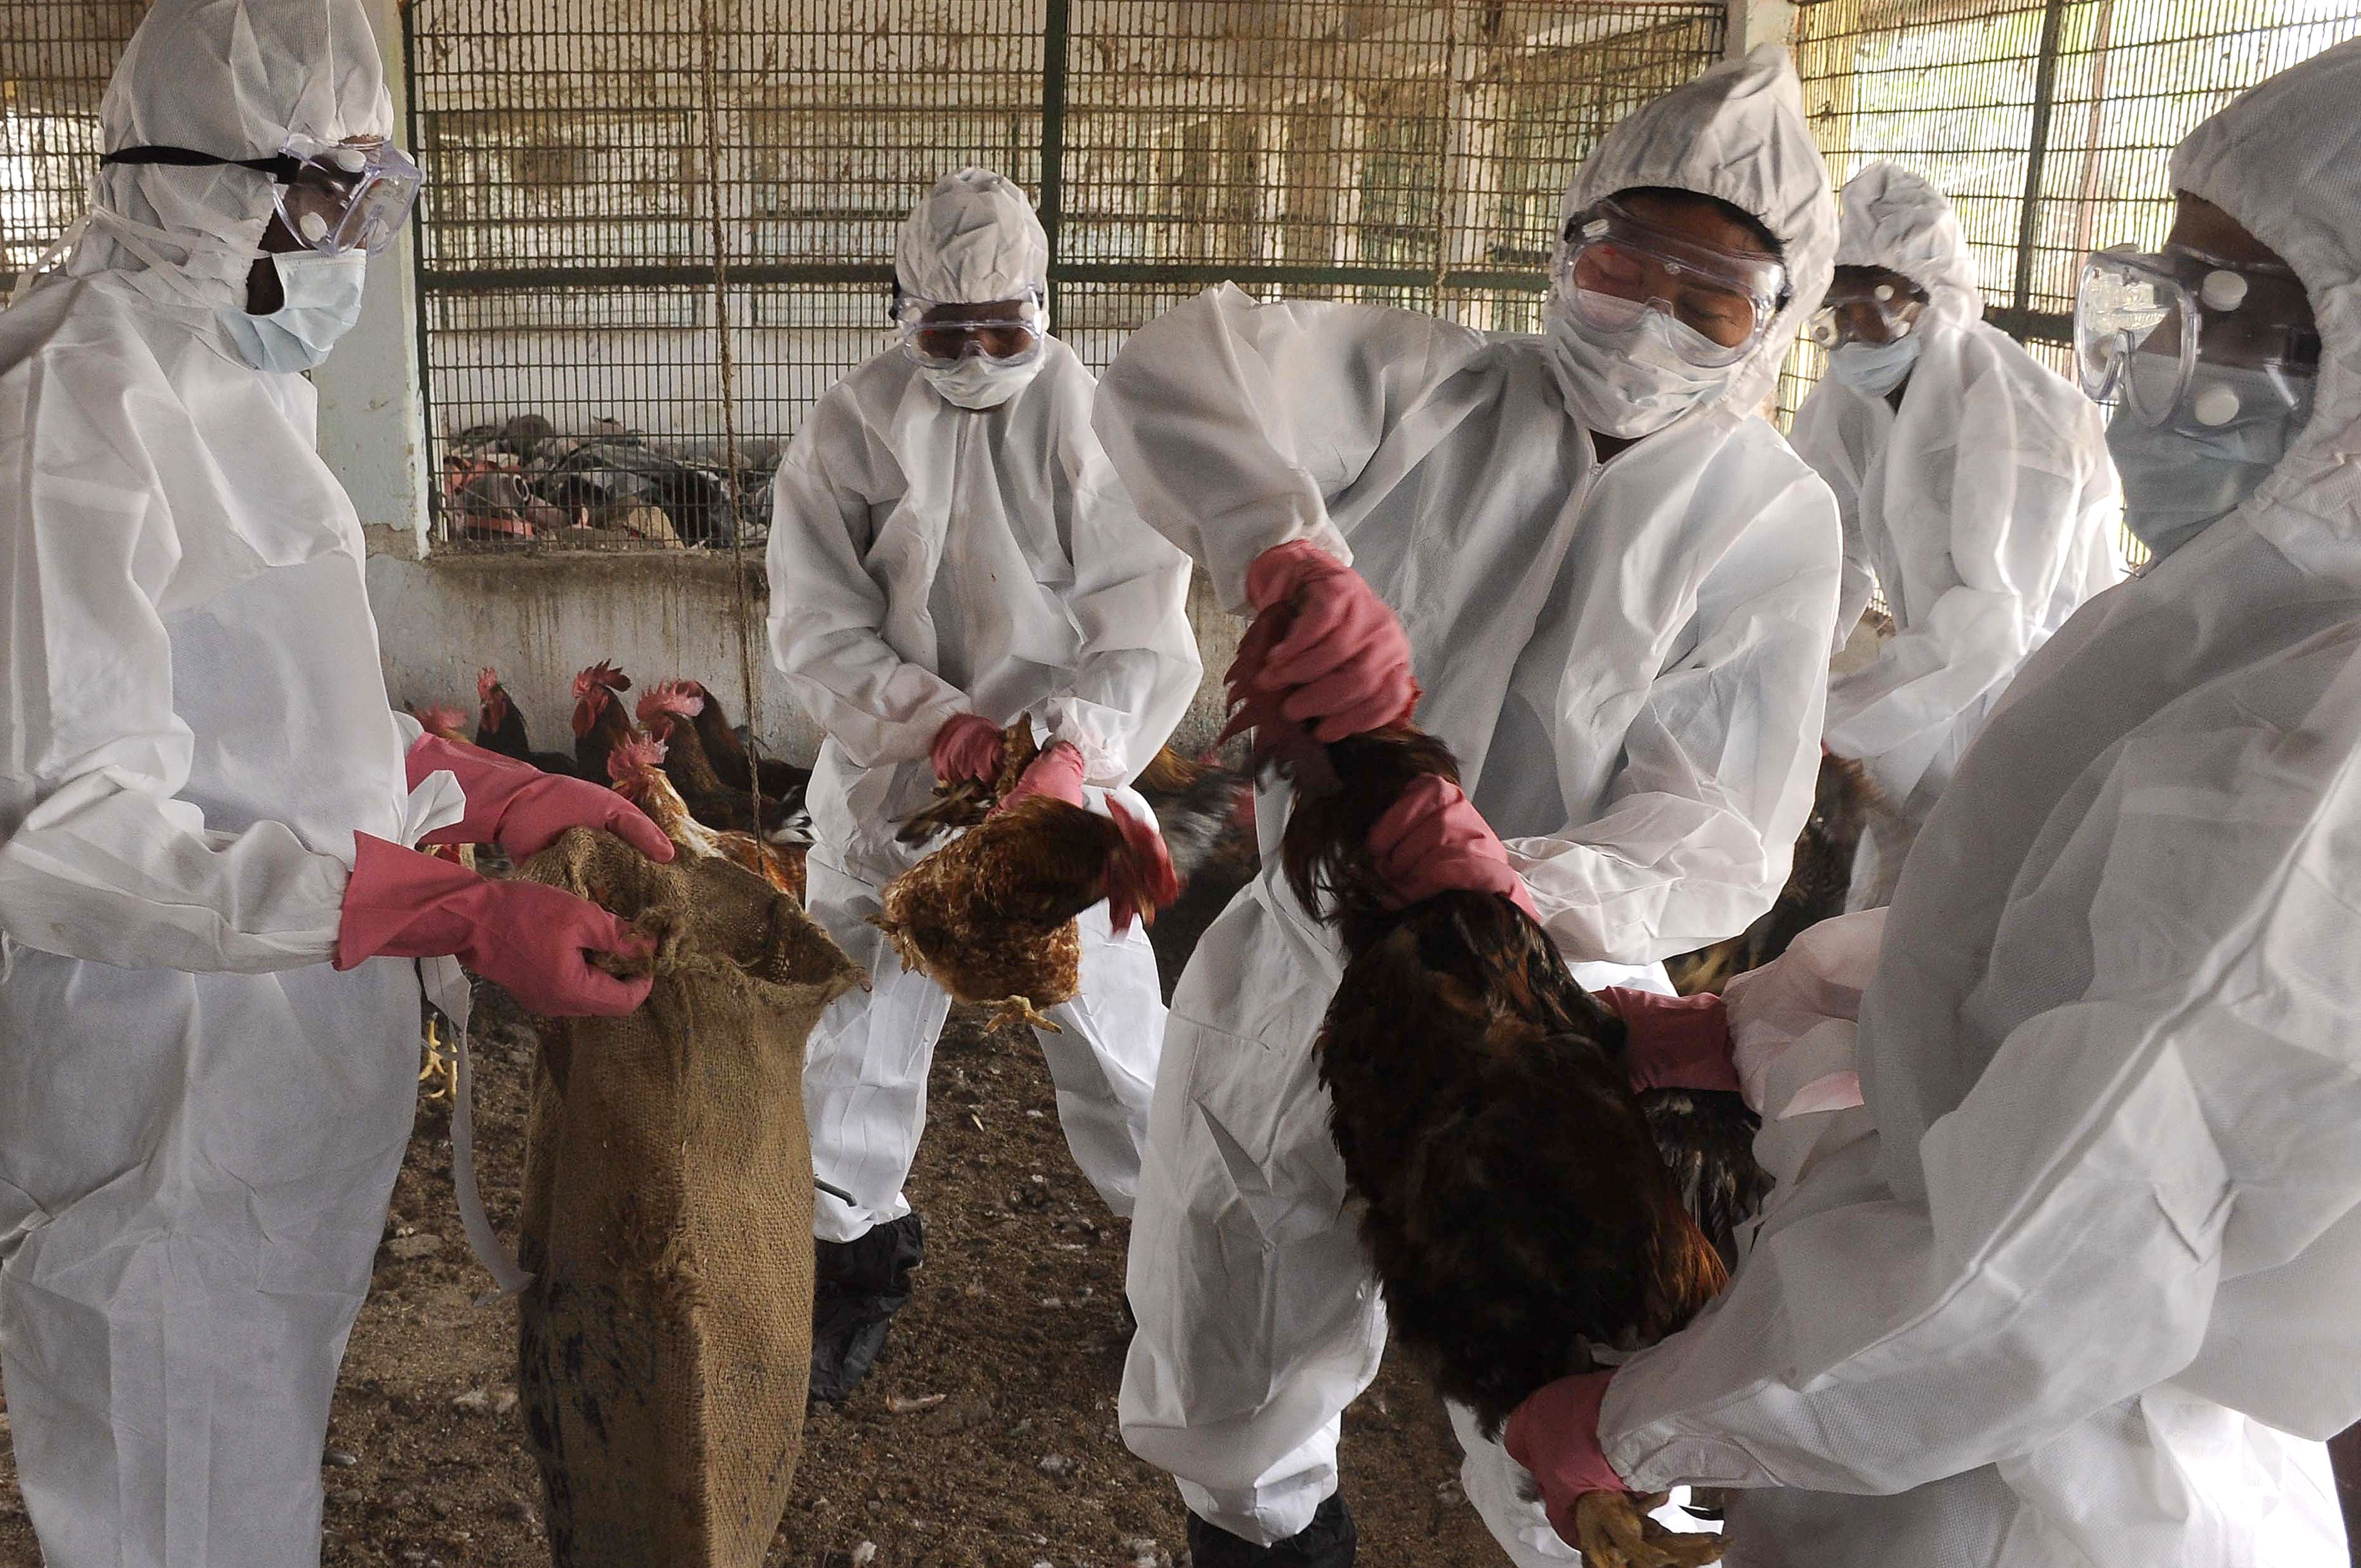 Indian poultry farm workers cull chickens during an operation after an outbreak of avian flu at a government poultry farm in Gandhigram, on the outskirts of Agartala, capital of northeastern state of Tripura on January 16, 2016.